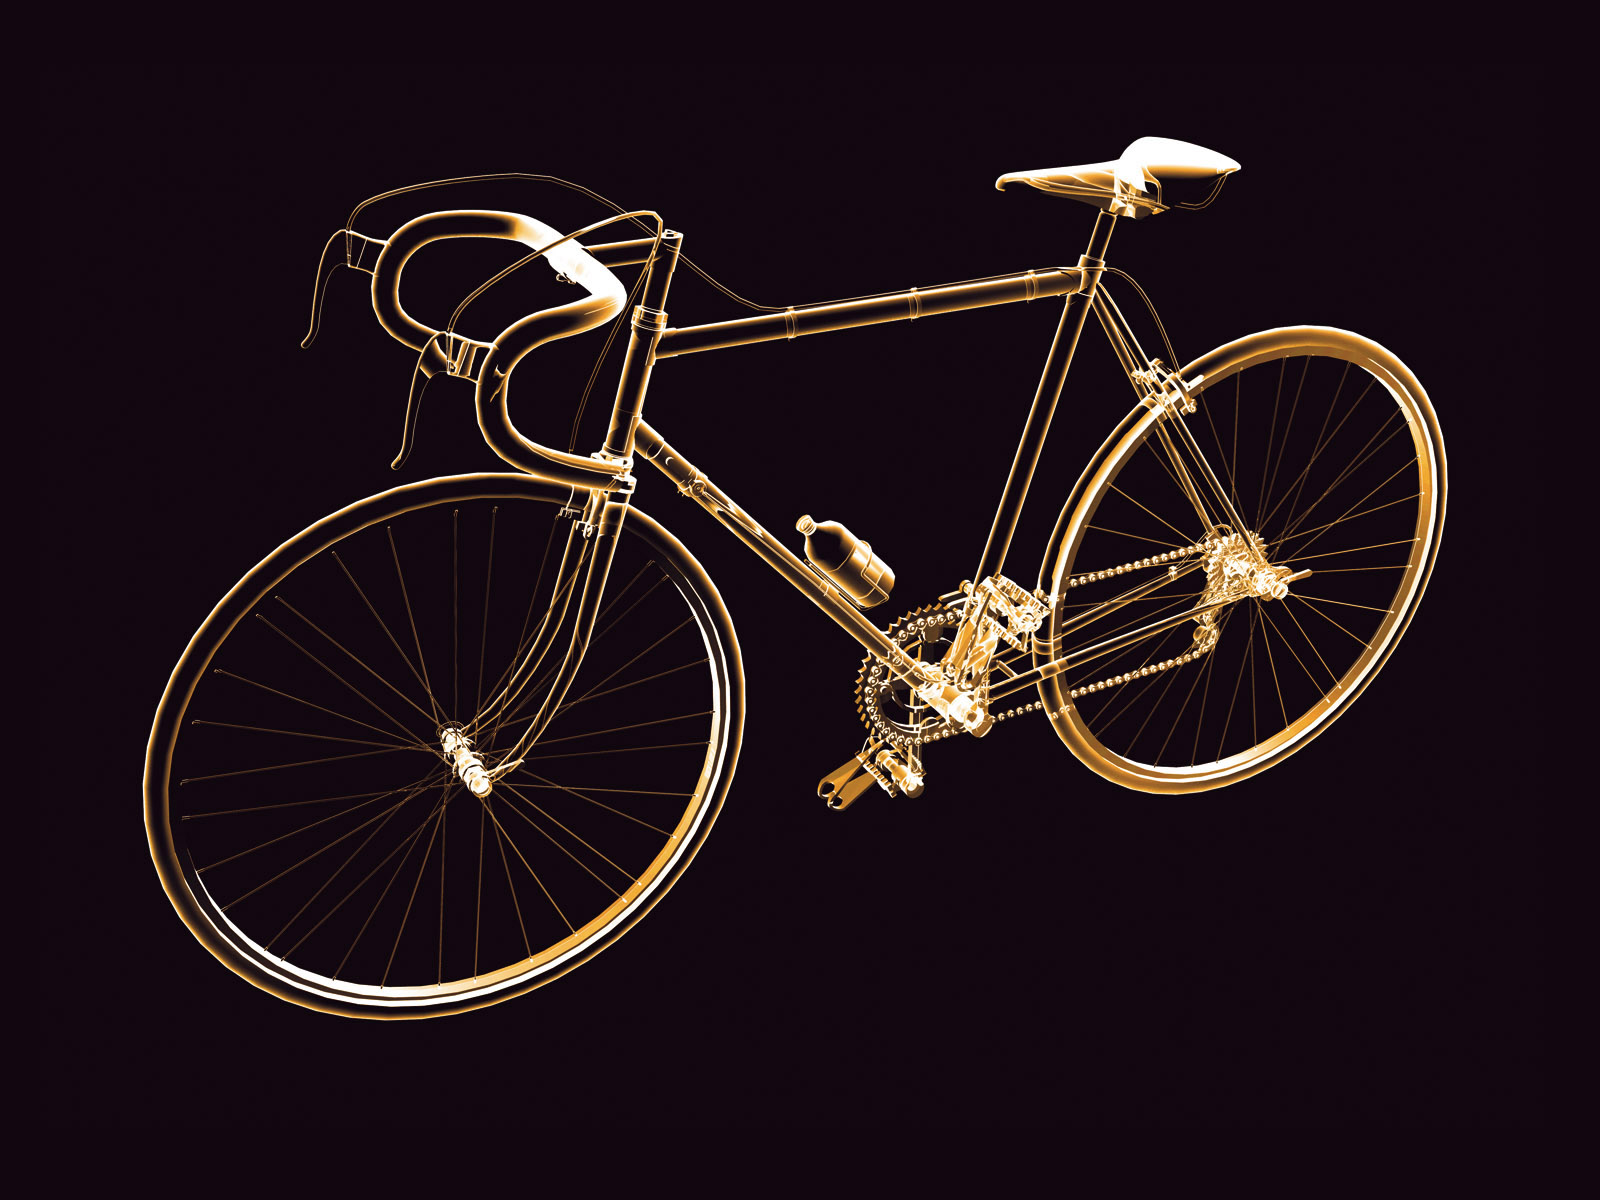 1600x1200 Neon Bicycle Desktop Pc And Mac Wallpaper Pictures 1600x1200